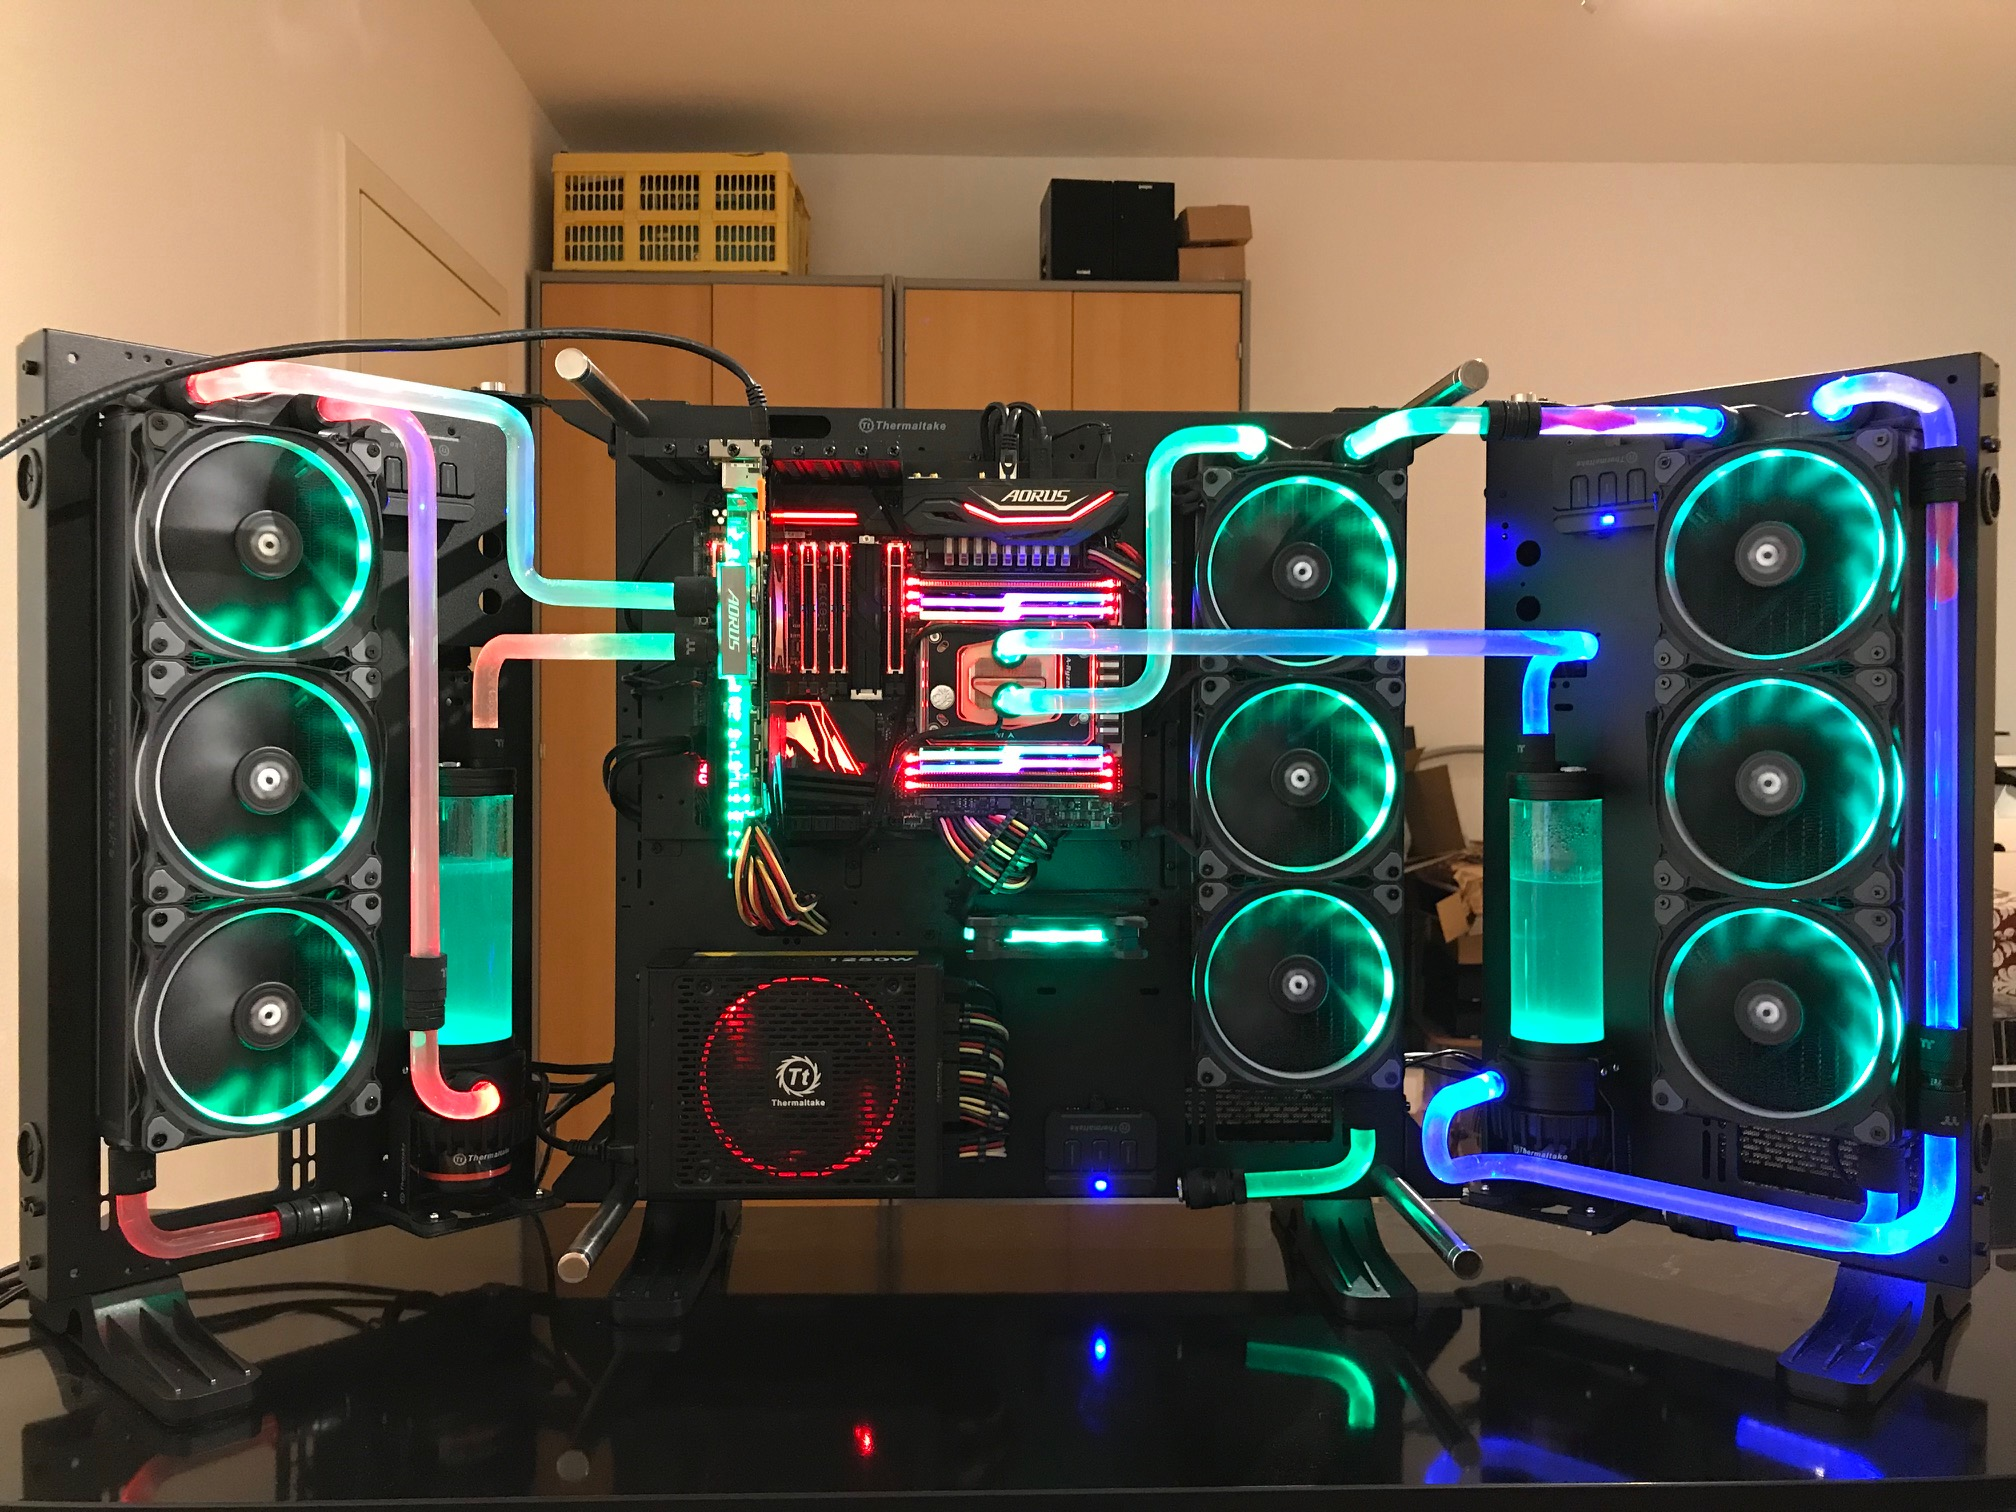 Software cant recognize the new Riing 12 RGB Fan TT Premium Fans